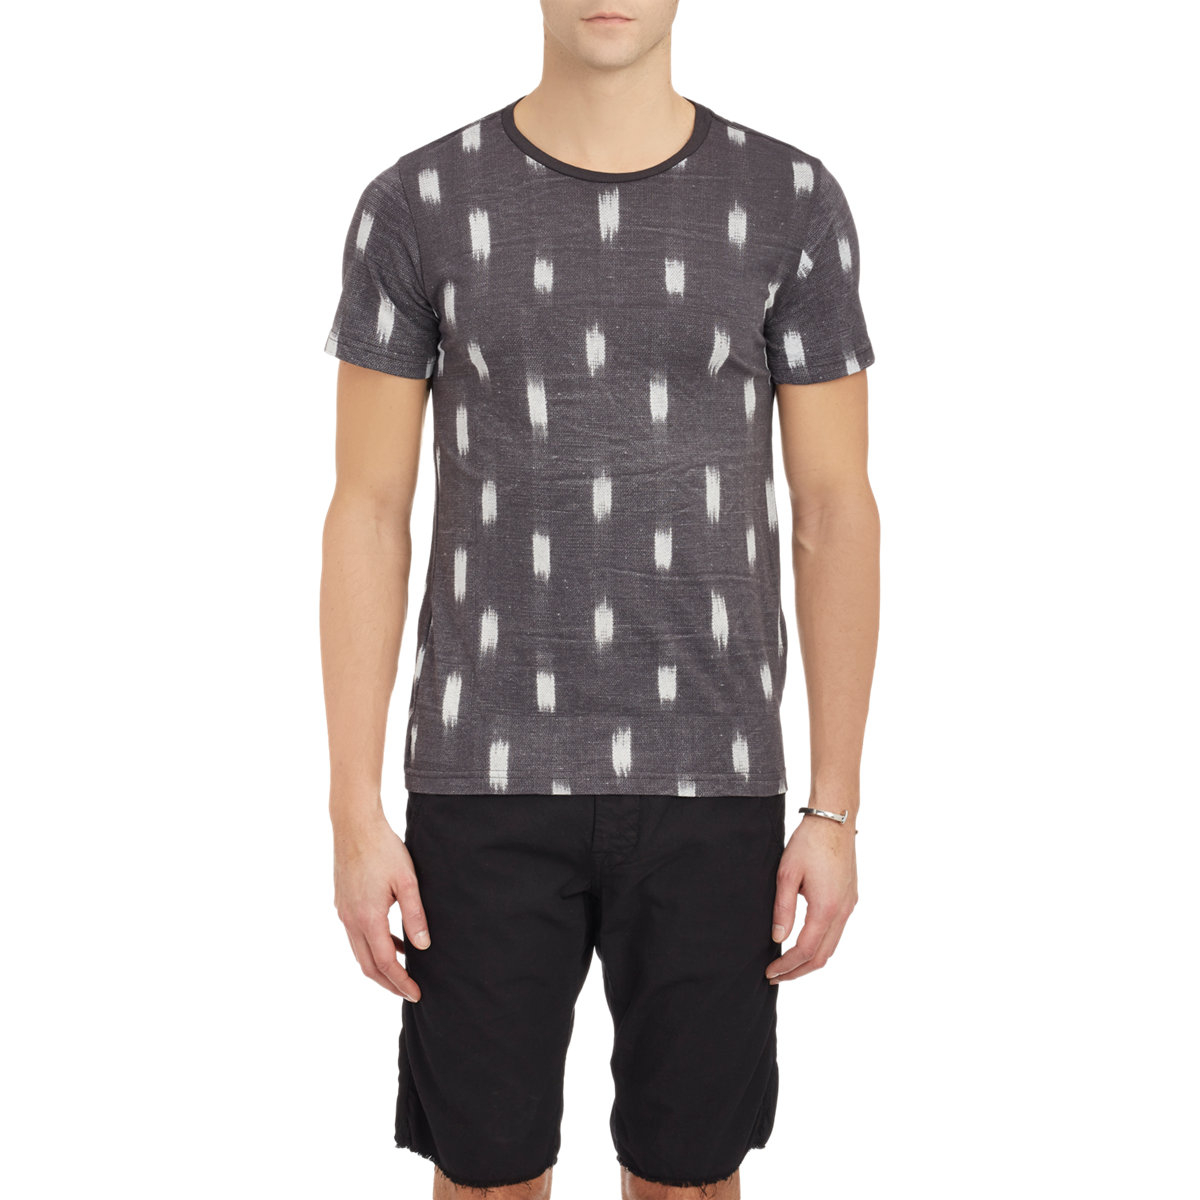 Lyst barneys new york brushstroke print t shirt black for New york printed t shirts